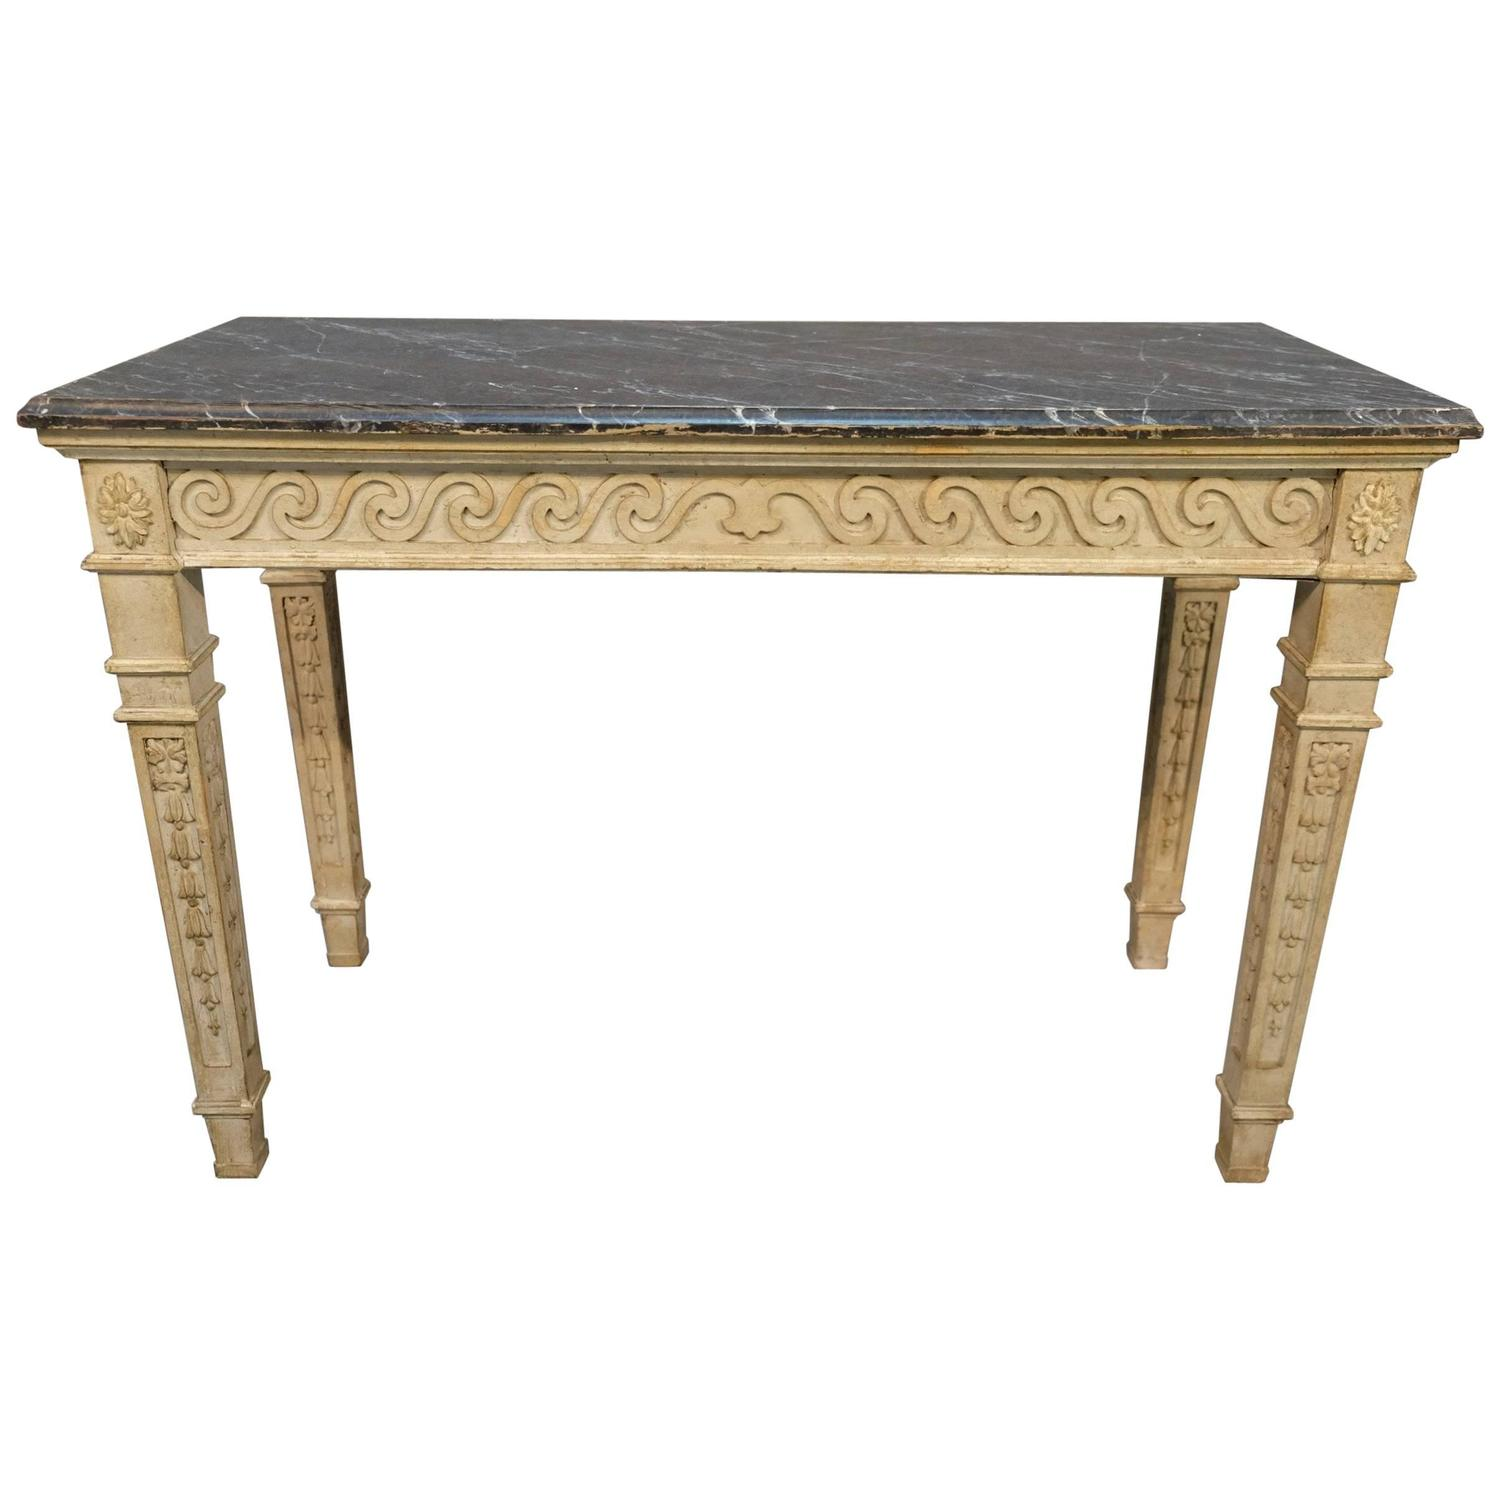 19th Century French Painted Console Table